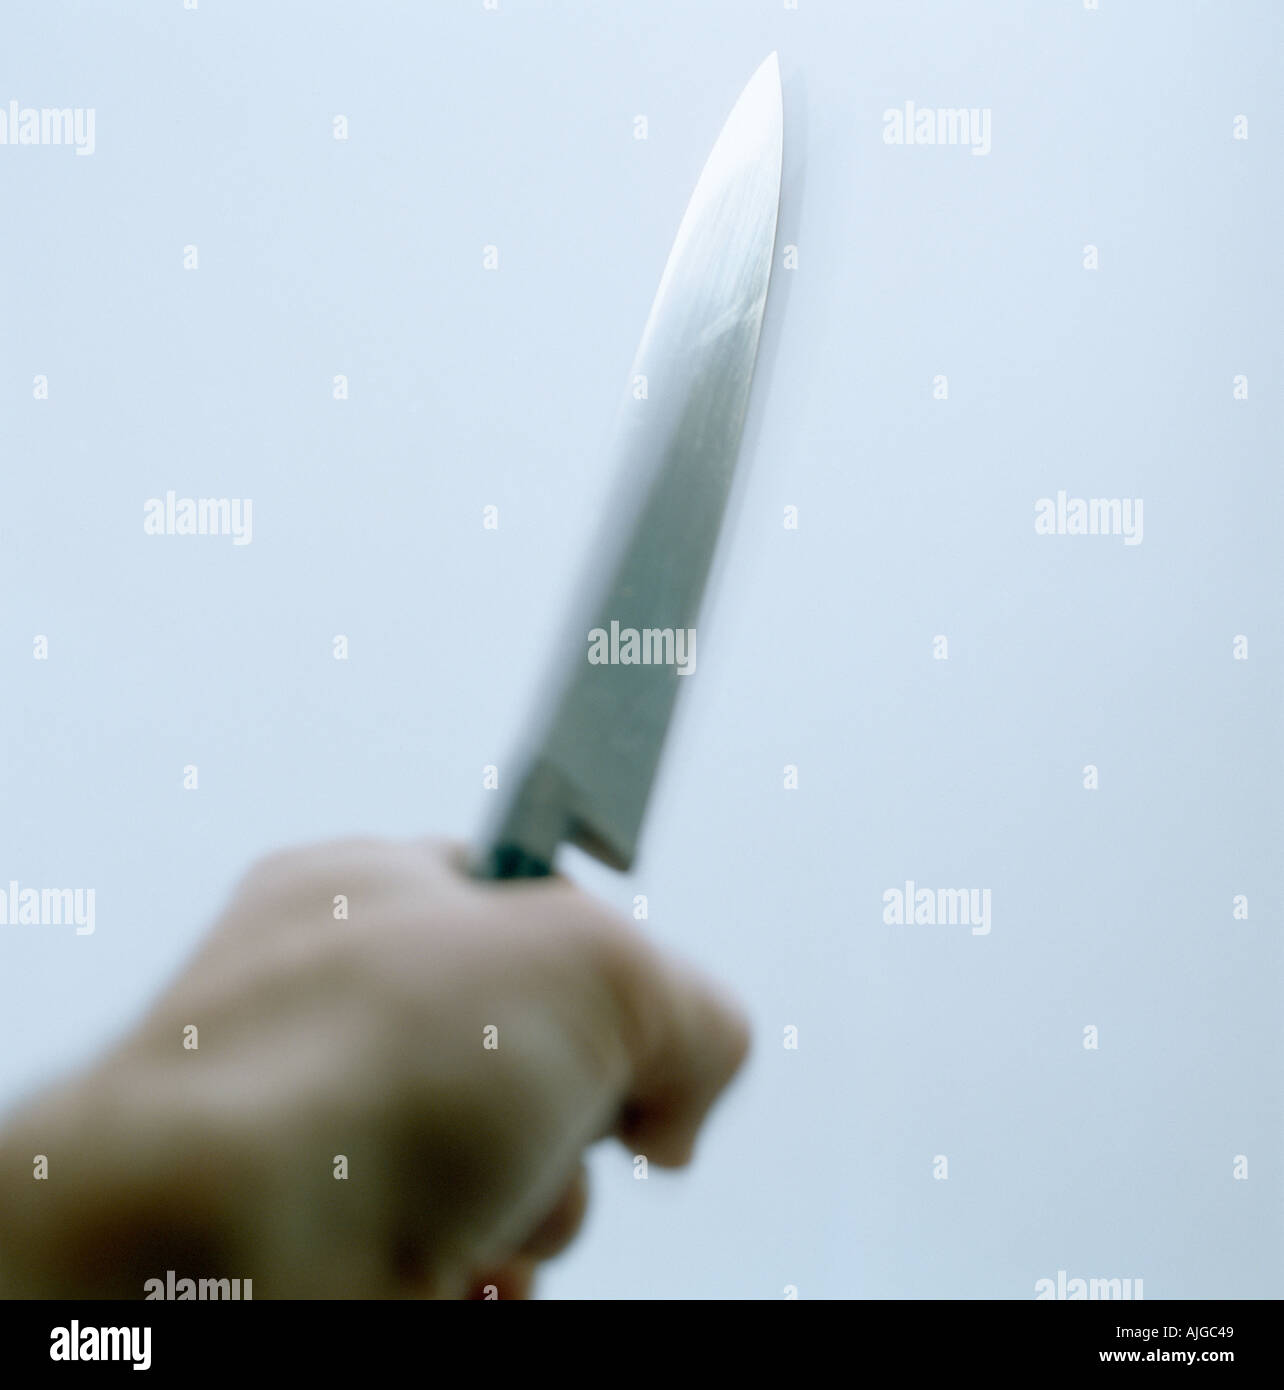 Knife being held in attacking threatening manner - Stock Image